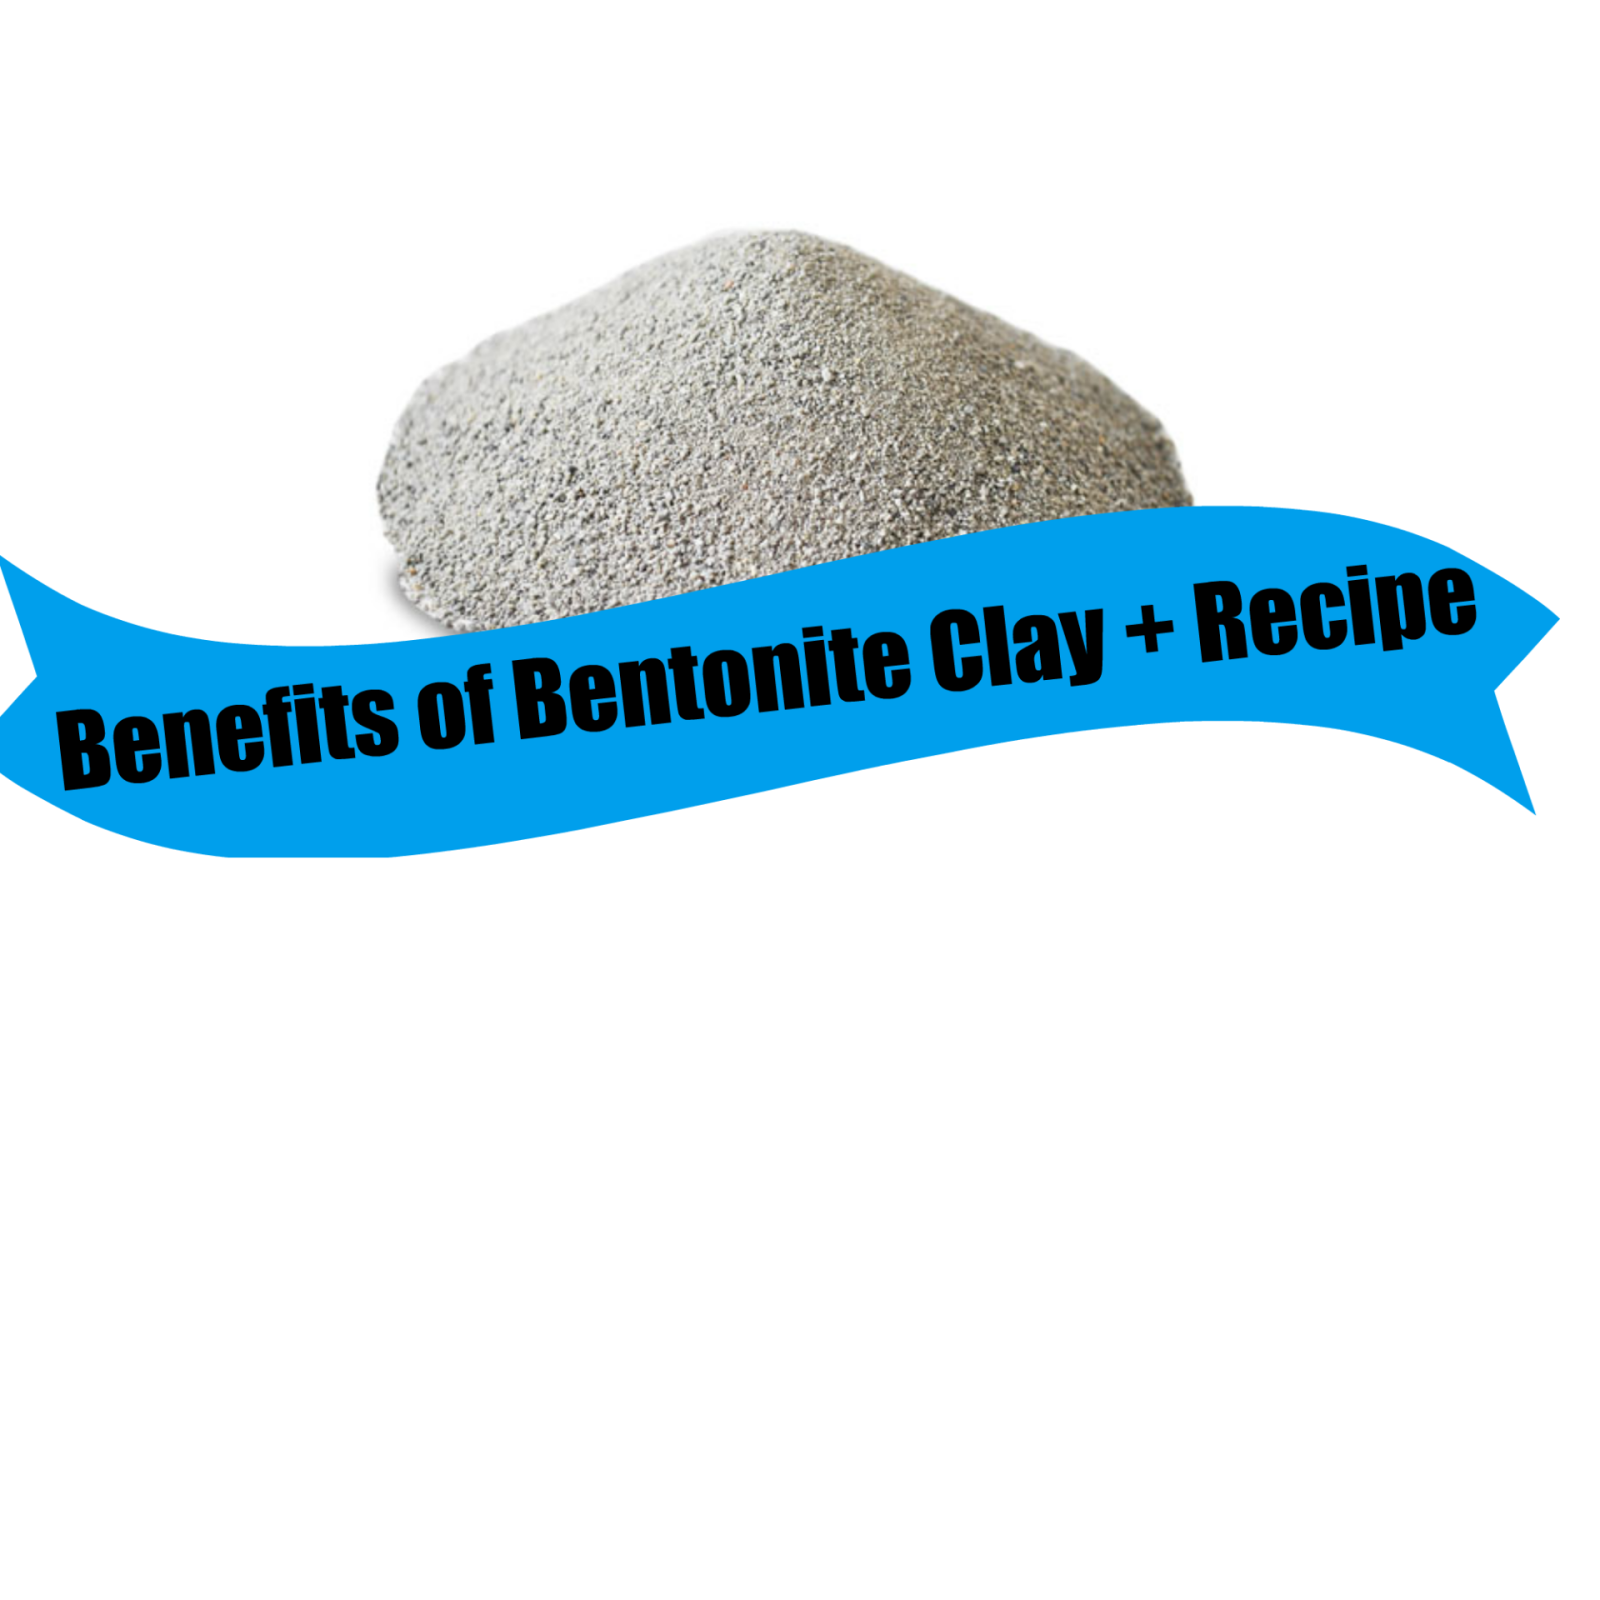 Benefits of Bentonite Clay + Recipe